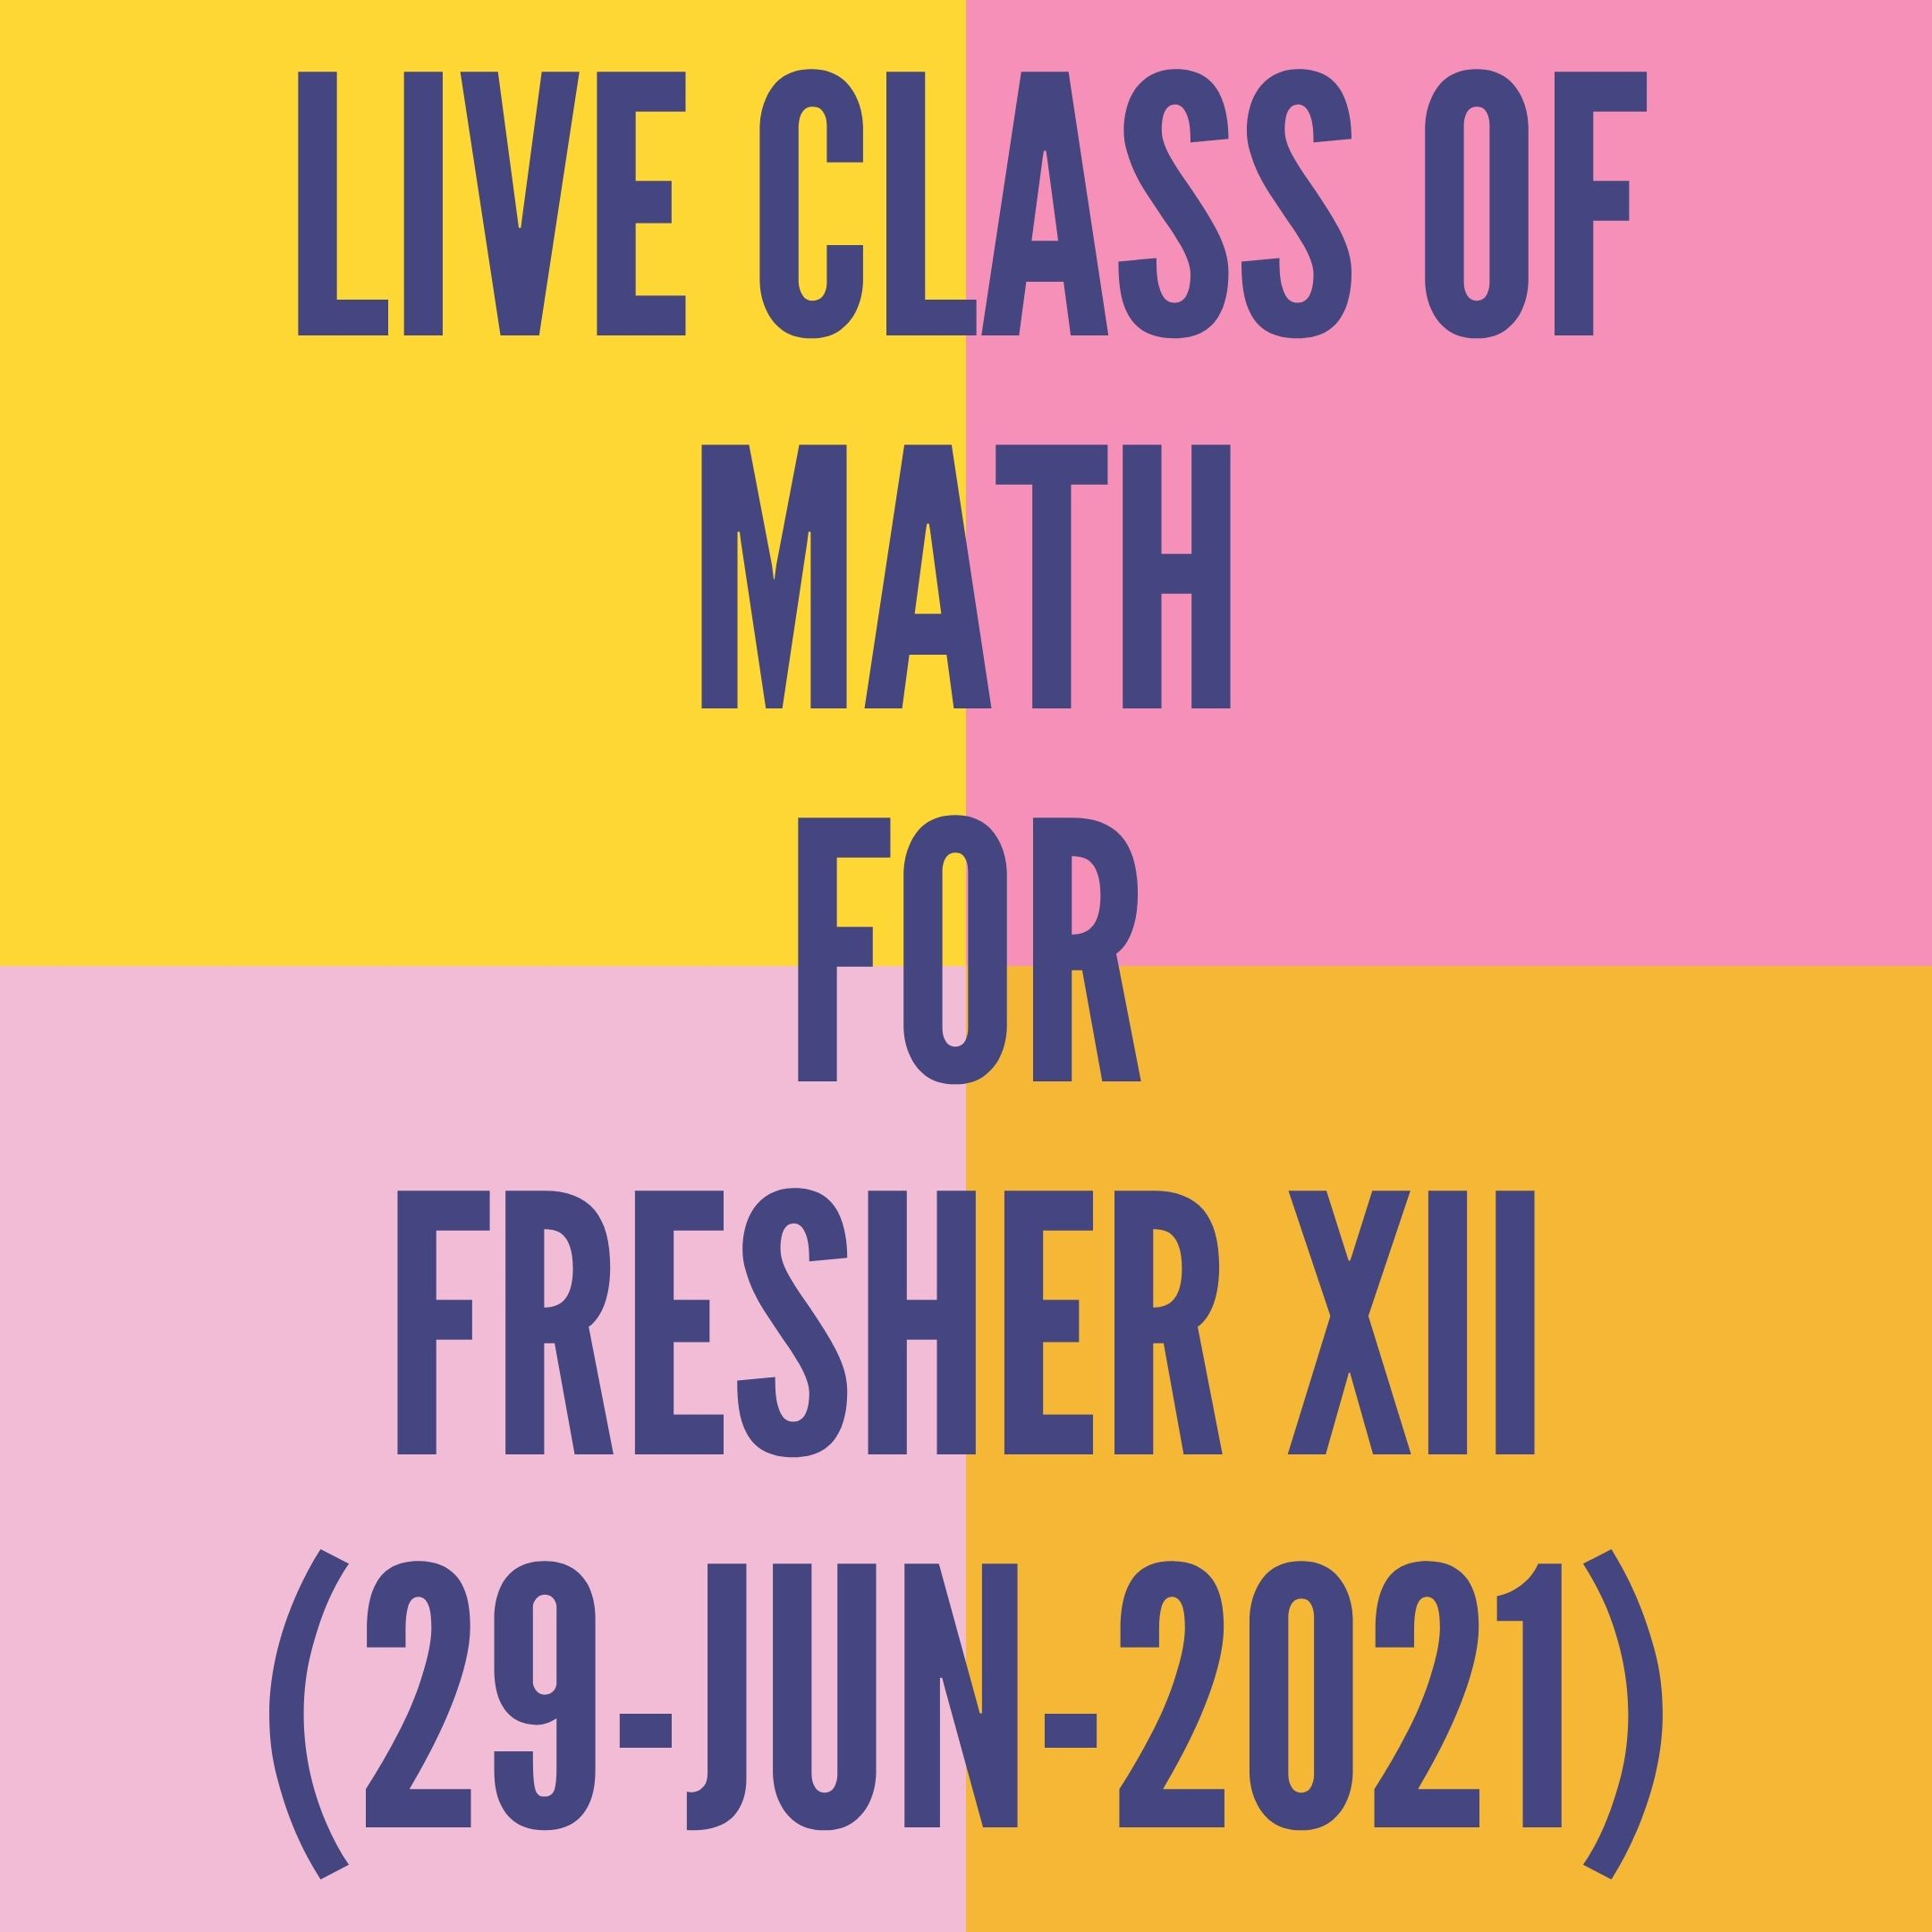 LIVE CLASS OF MATHS FOR FRESHER XII (29-JUN-2021)